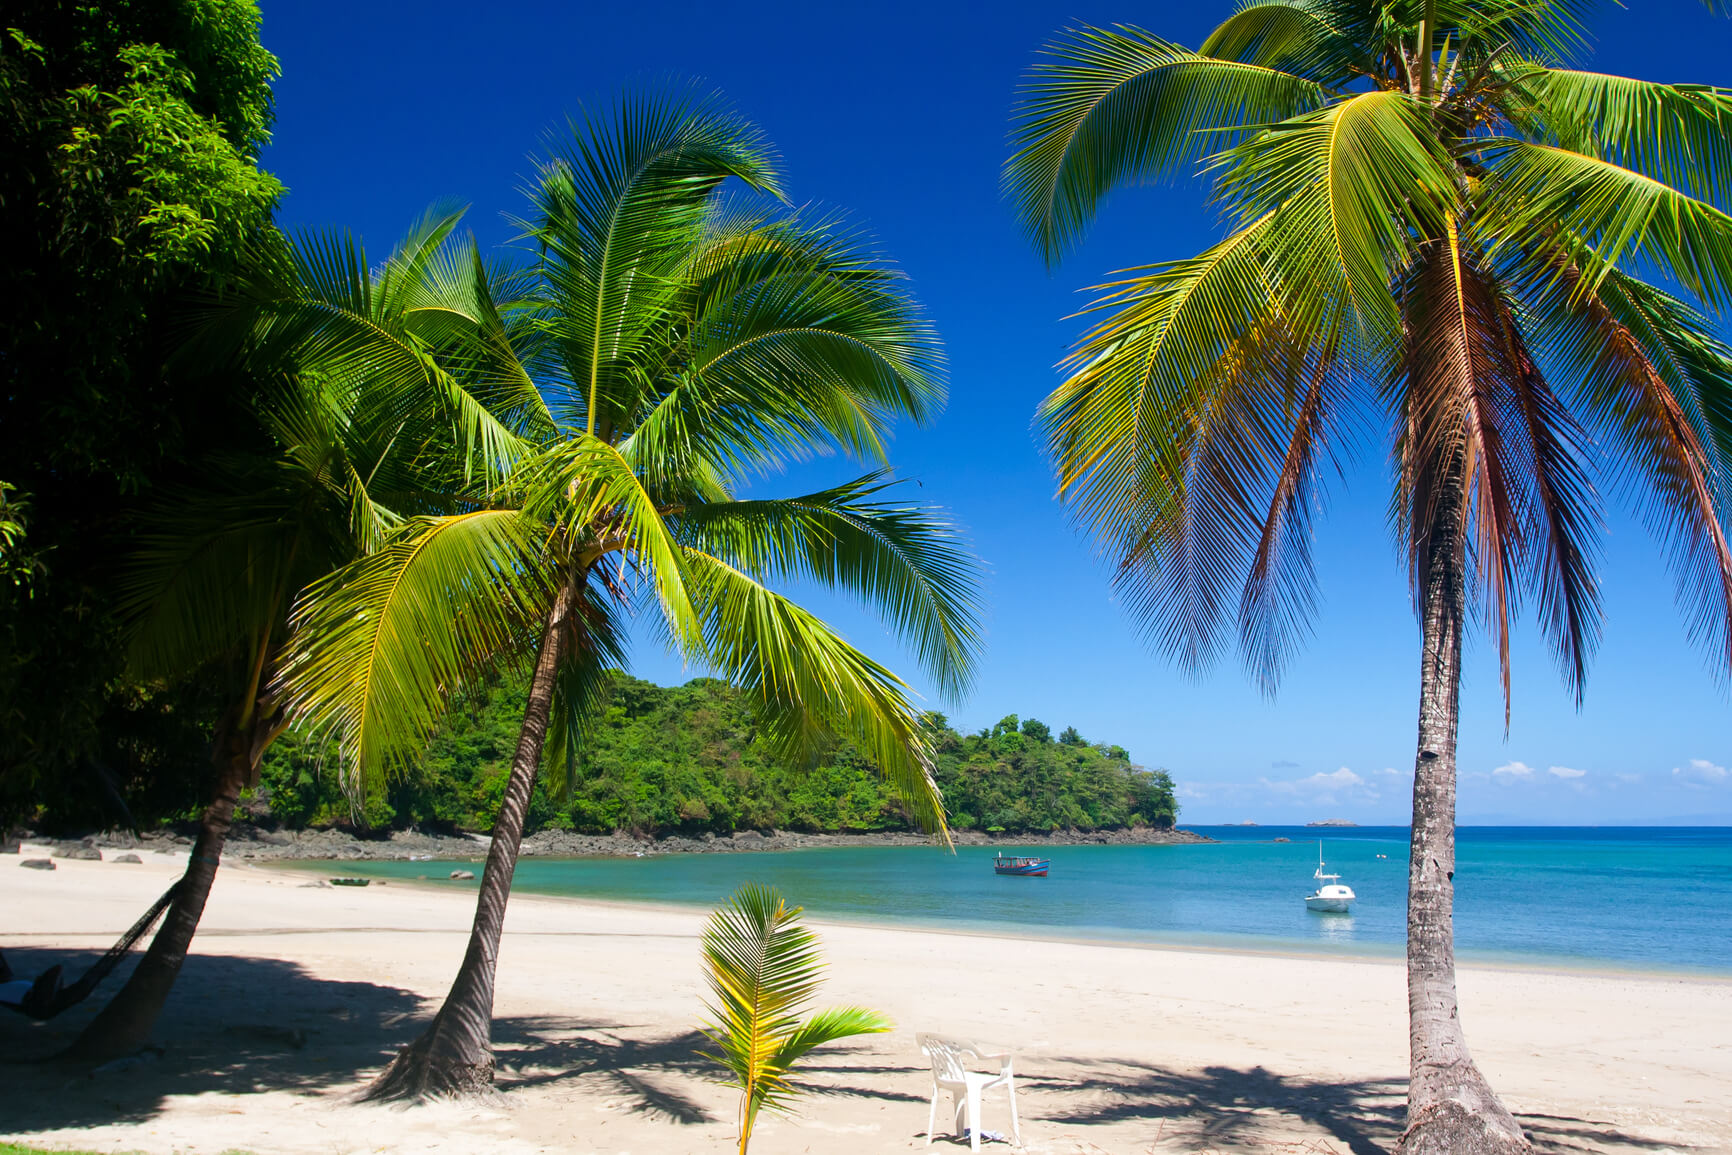 Toronto, Canada to Panama City, Panama, returning from San Jose, Costa Rica for only $349 CAD roundtrip